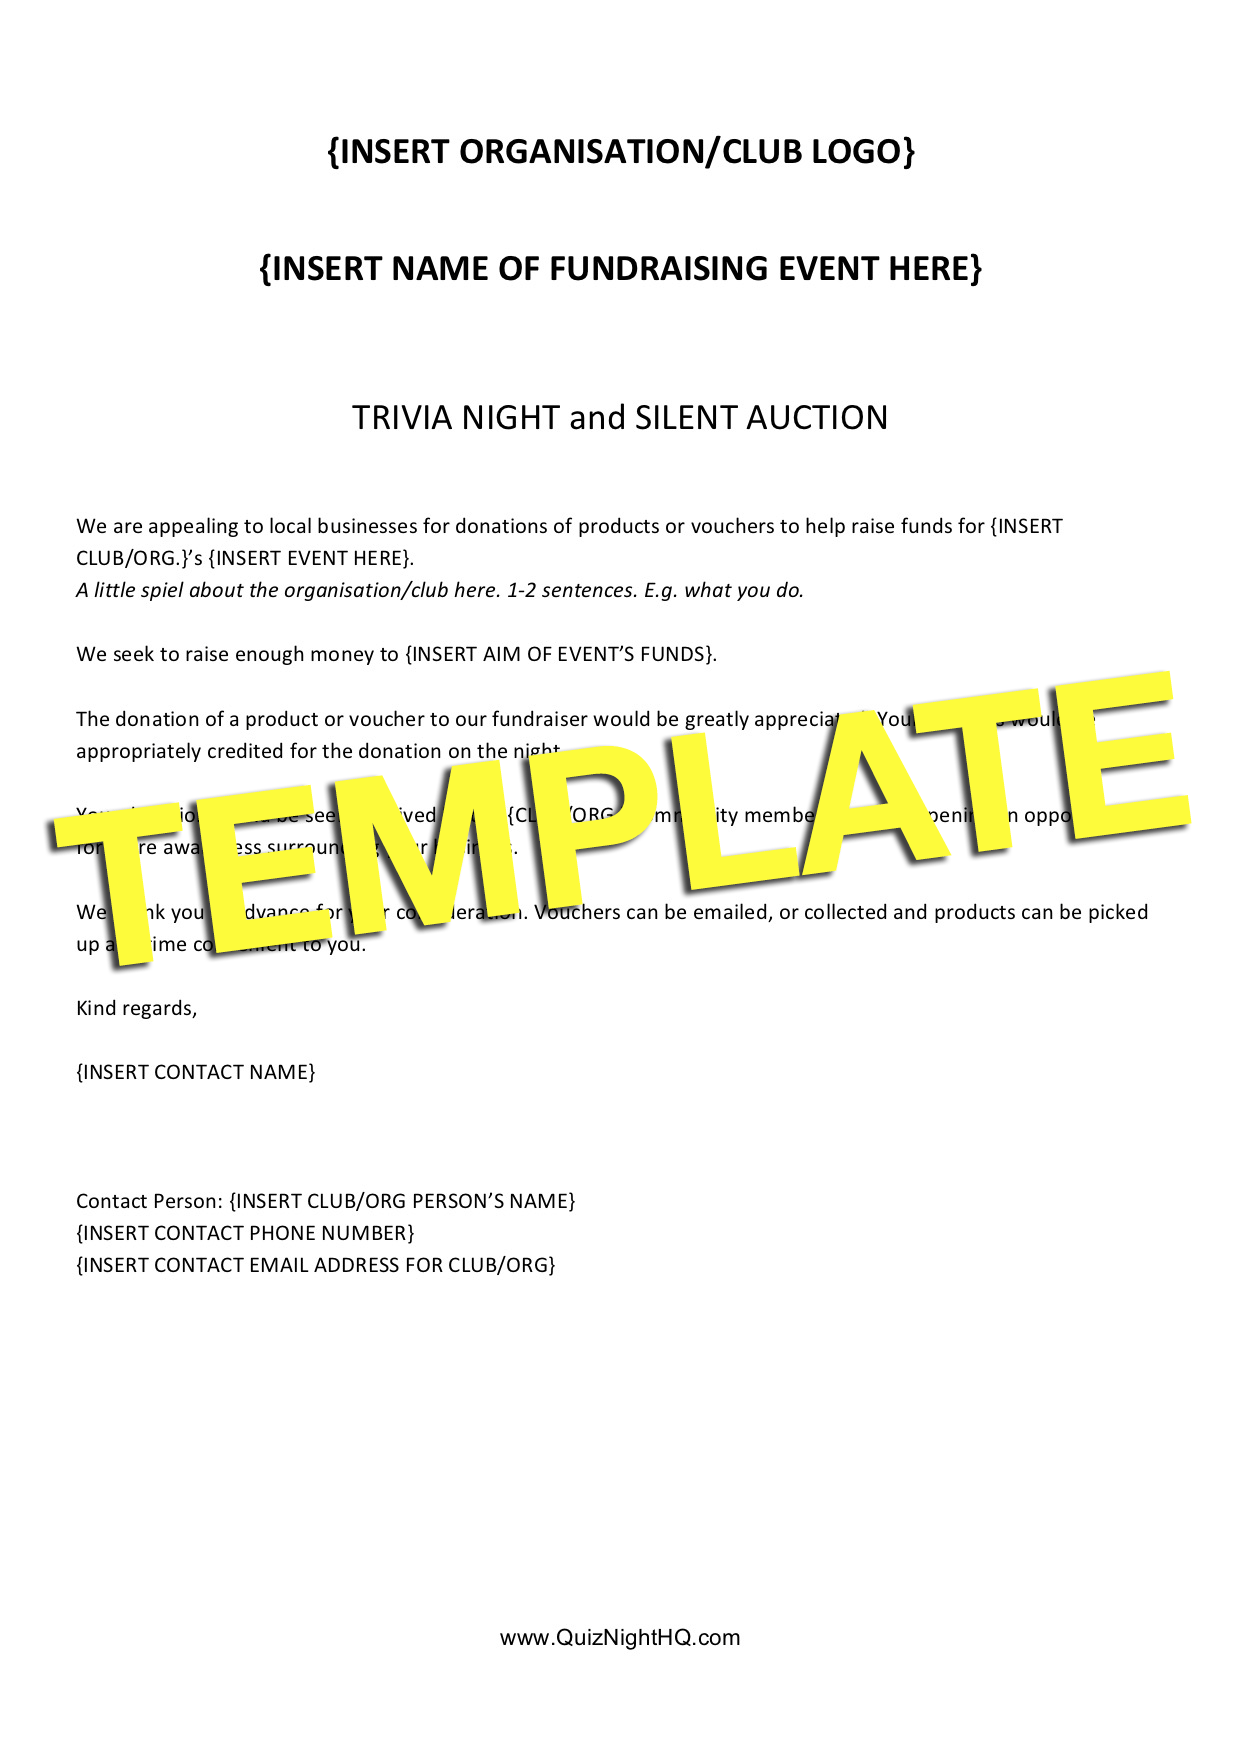 Request-for-Sponsorship-Letter-Template Vendor Sponsorship Letter Template on vendor termination letter, vendor appointment letter, vendor fundraising letter, vendor contact letter, vendor request letter, vendor reference letter, vendor support letter, vendor donation letter, vendor acceptance letter, vendor participation letter,